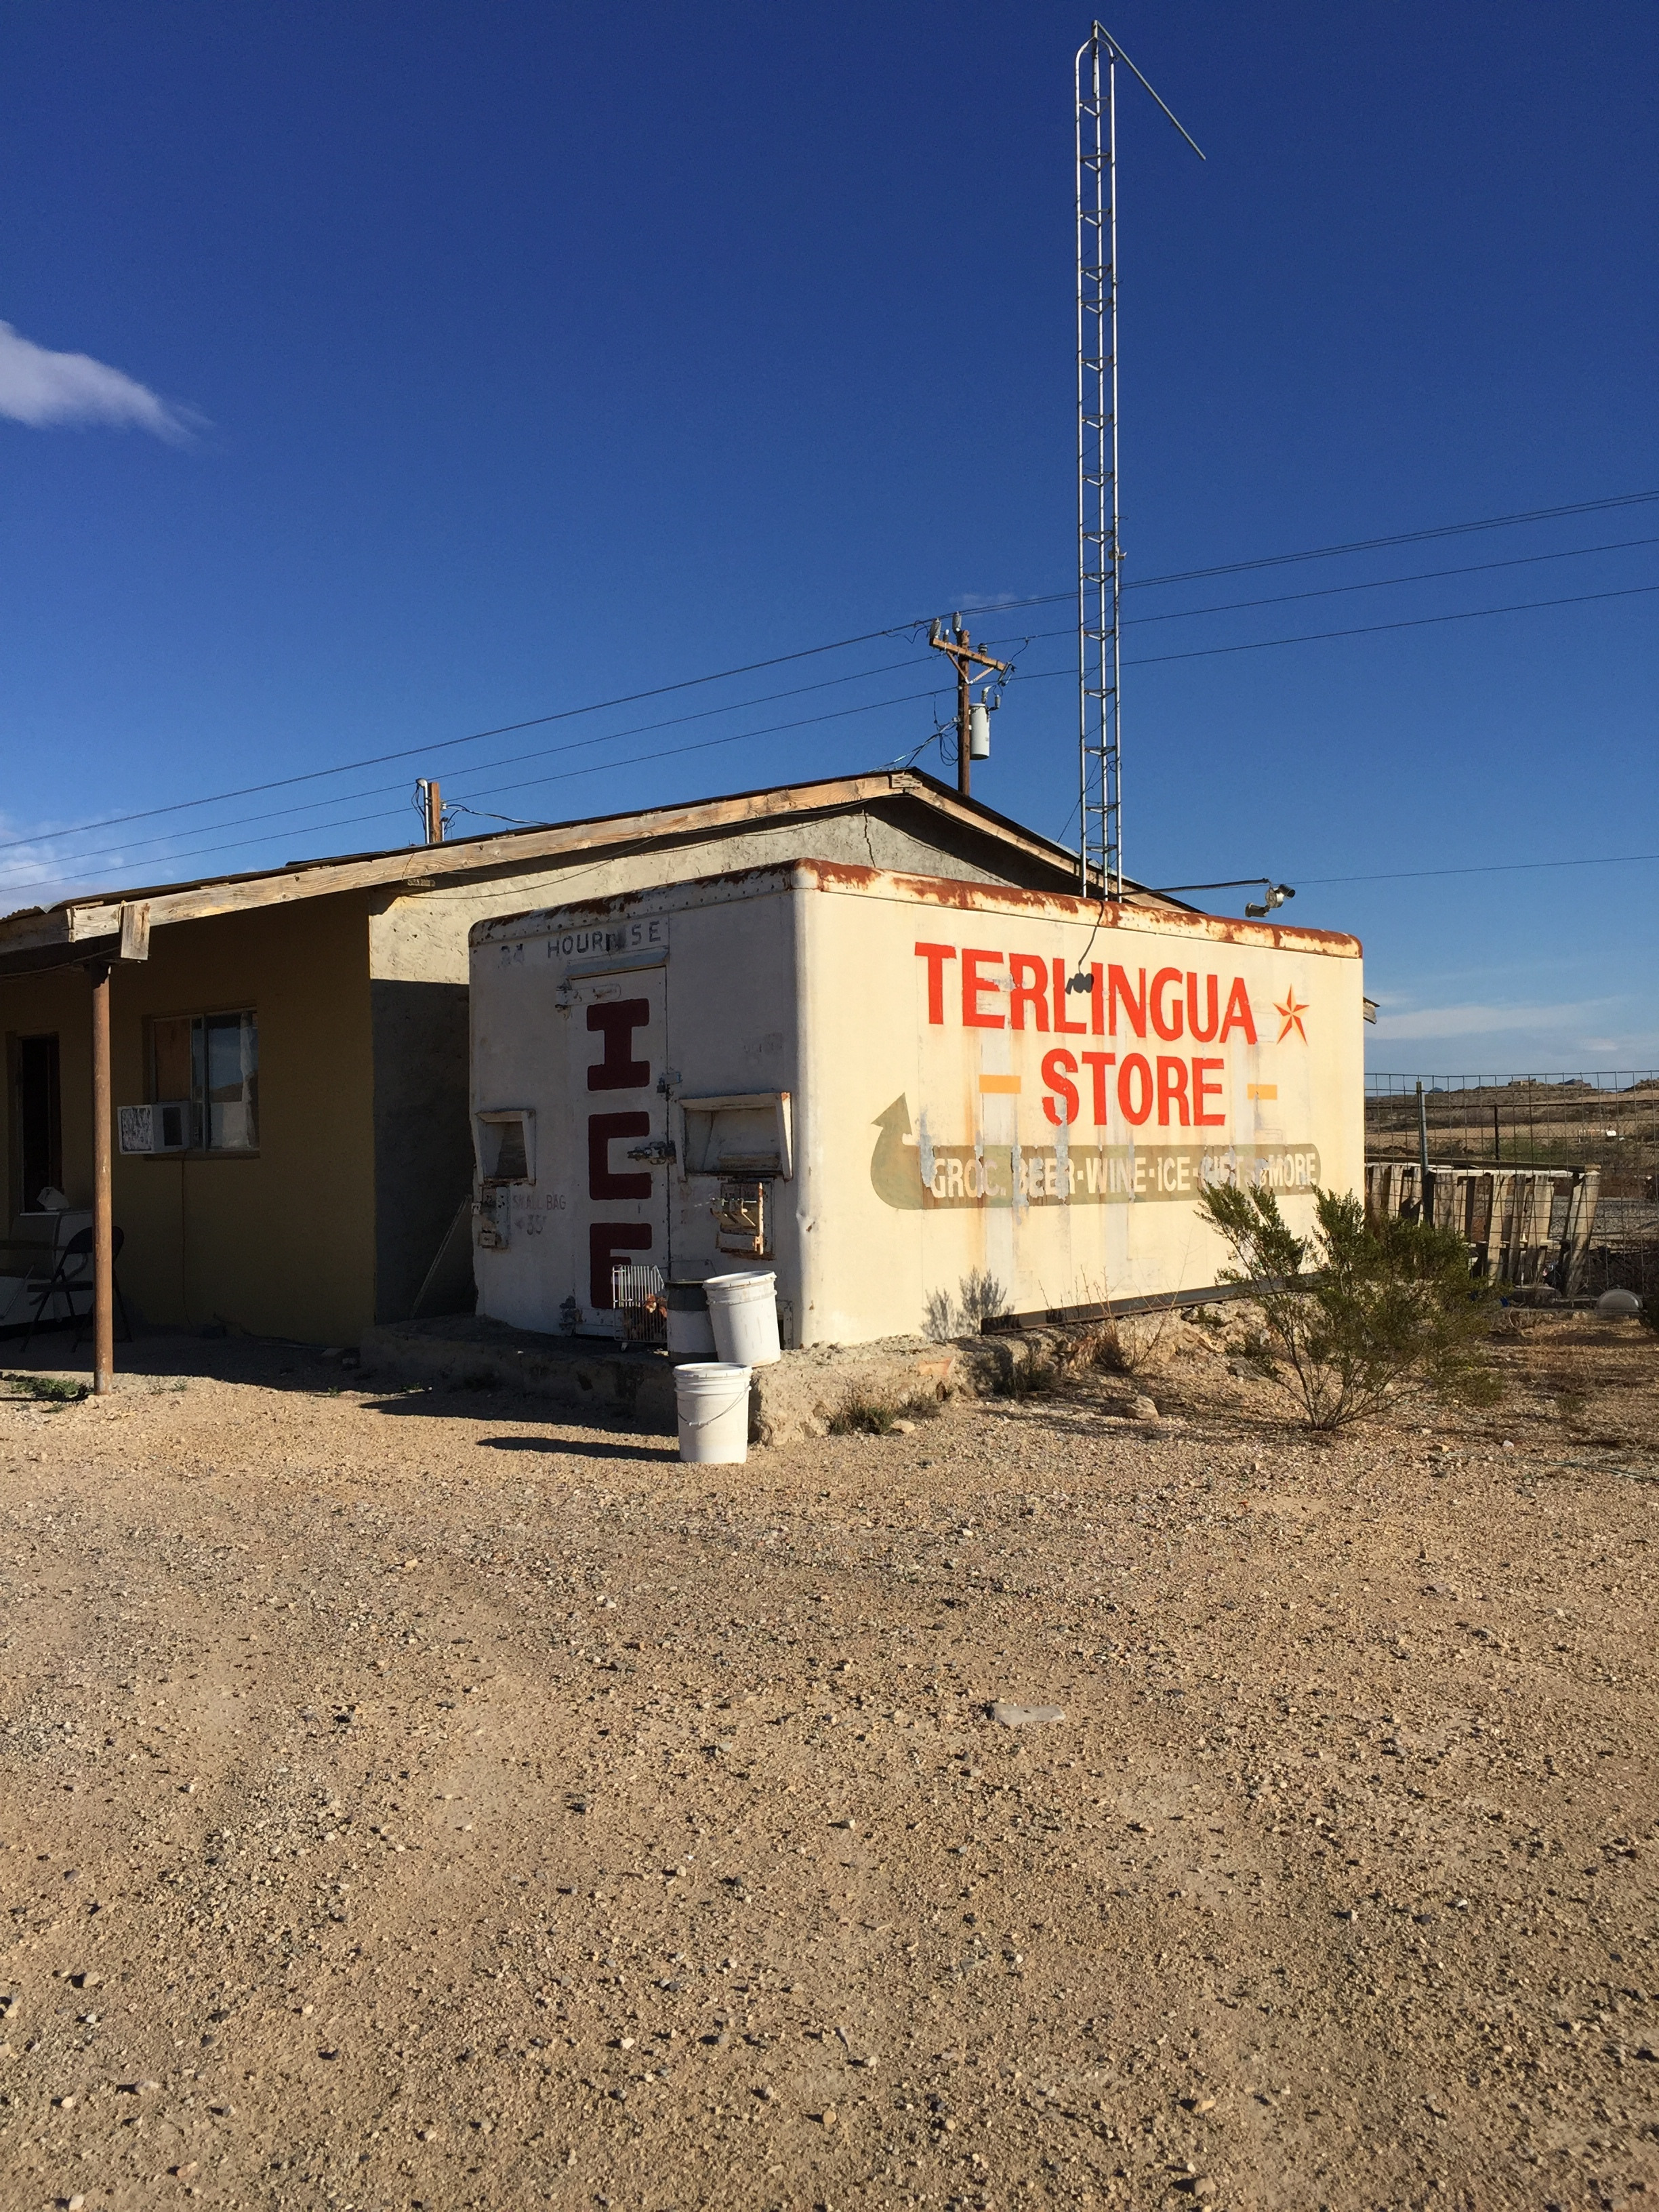 Freezer at a Closed General Store, Terlingua, Texas  Photo by Heather Holland